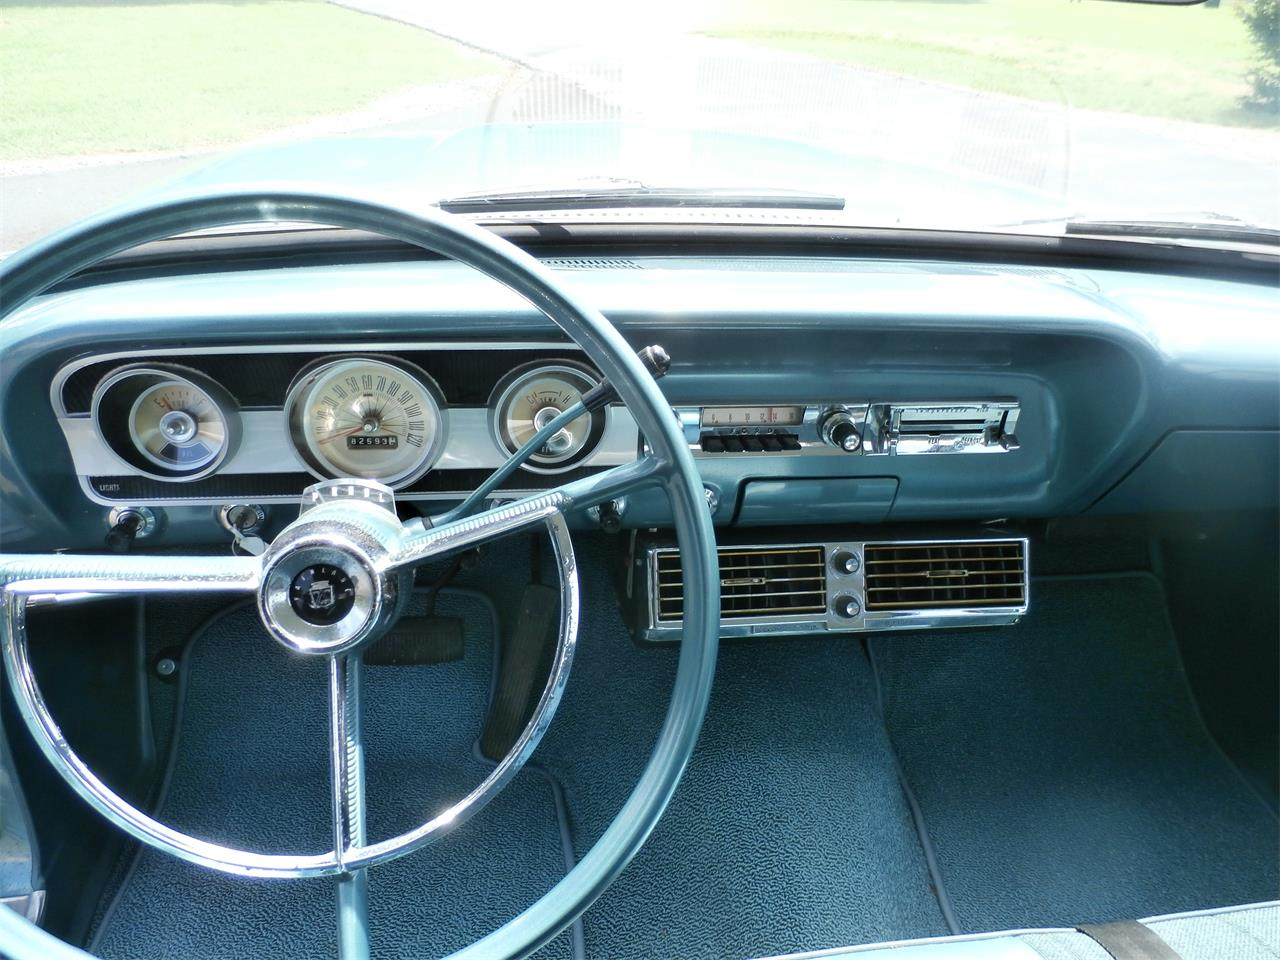 Large Picture of '64 Ford Fairlane Auction Vehicle Offered by Ball Auction Service - NS6K